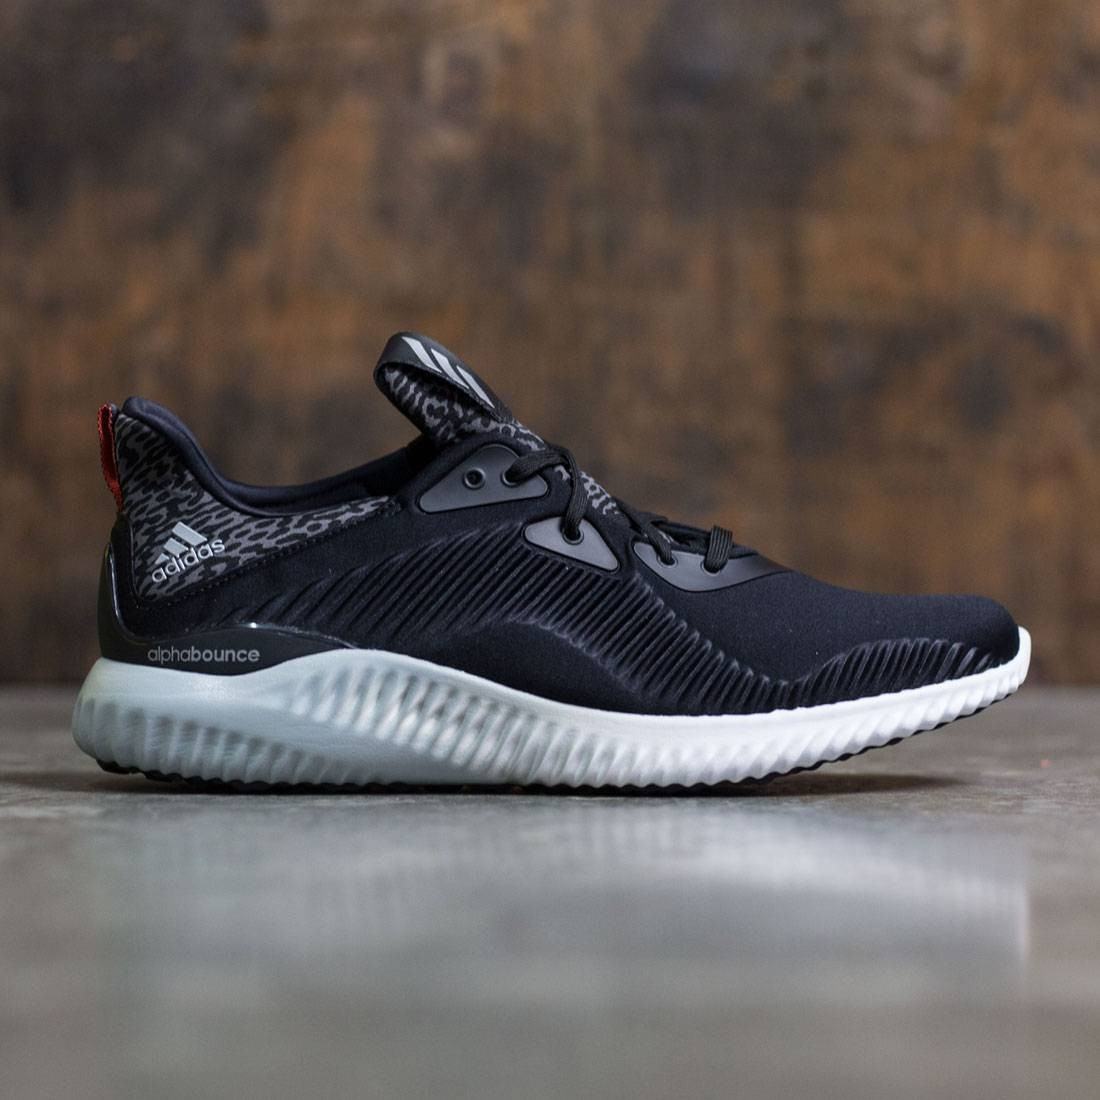 low priced 98684 39203 Adidas Men Alphabounce black core black silver metallic footwear white